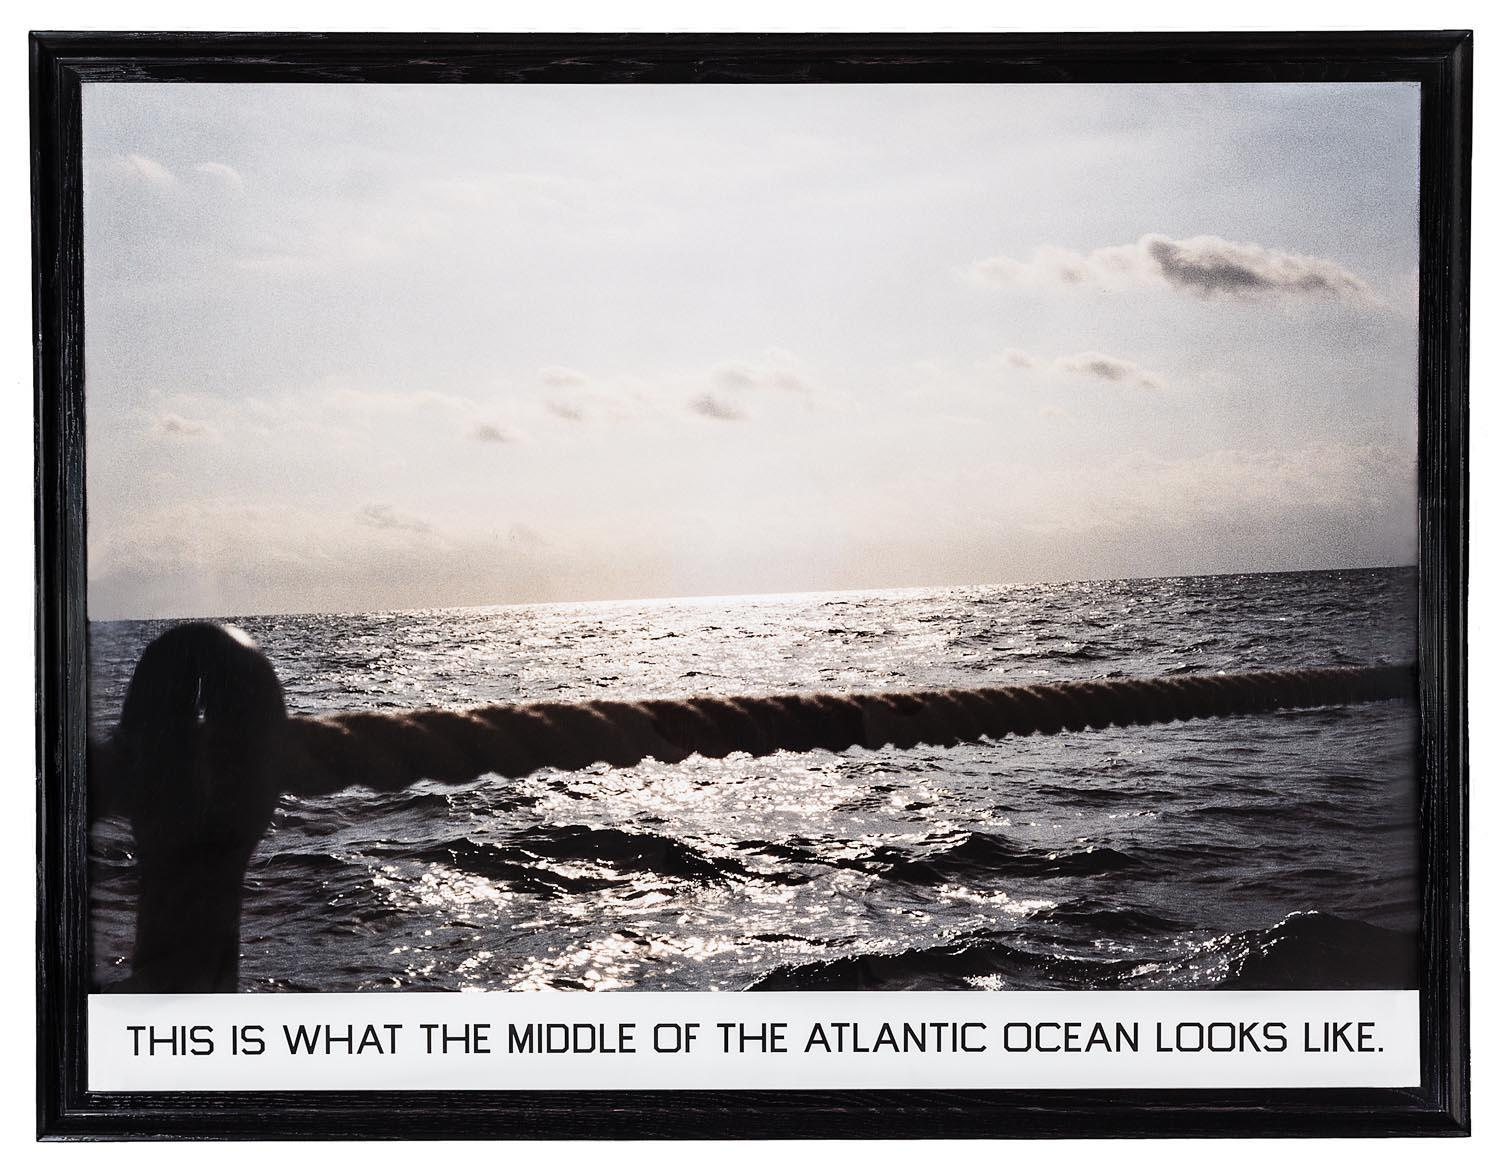 This is What The Middle of the Atlantic Ocean Looks Like